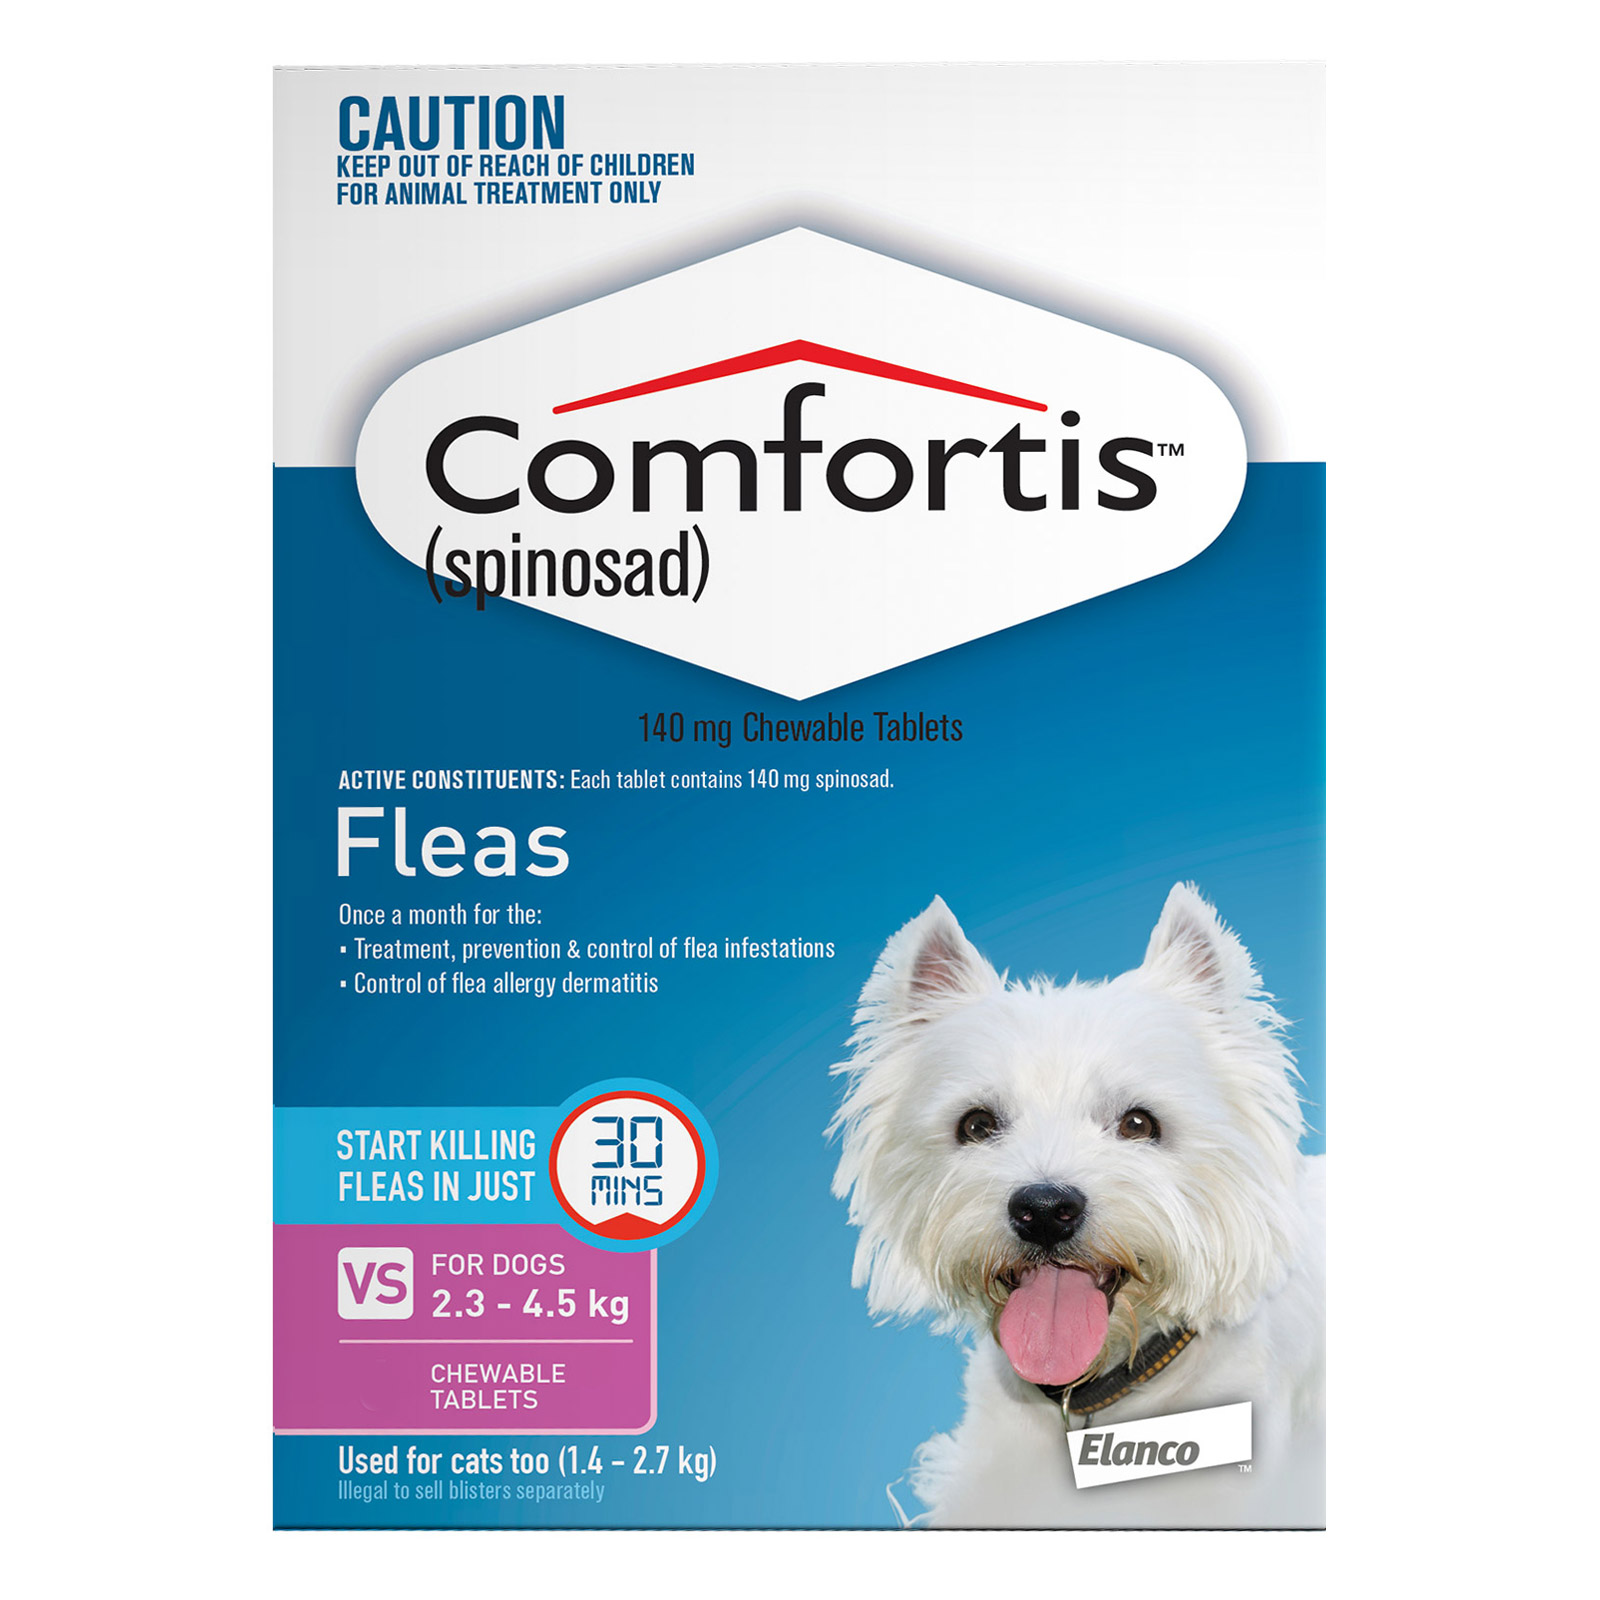 Comfortis For Dogs 2.3 - 4.5 Kg (Pink)